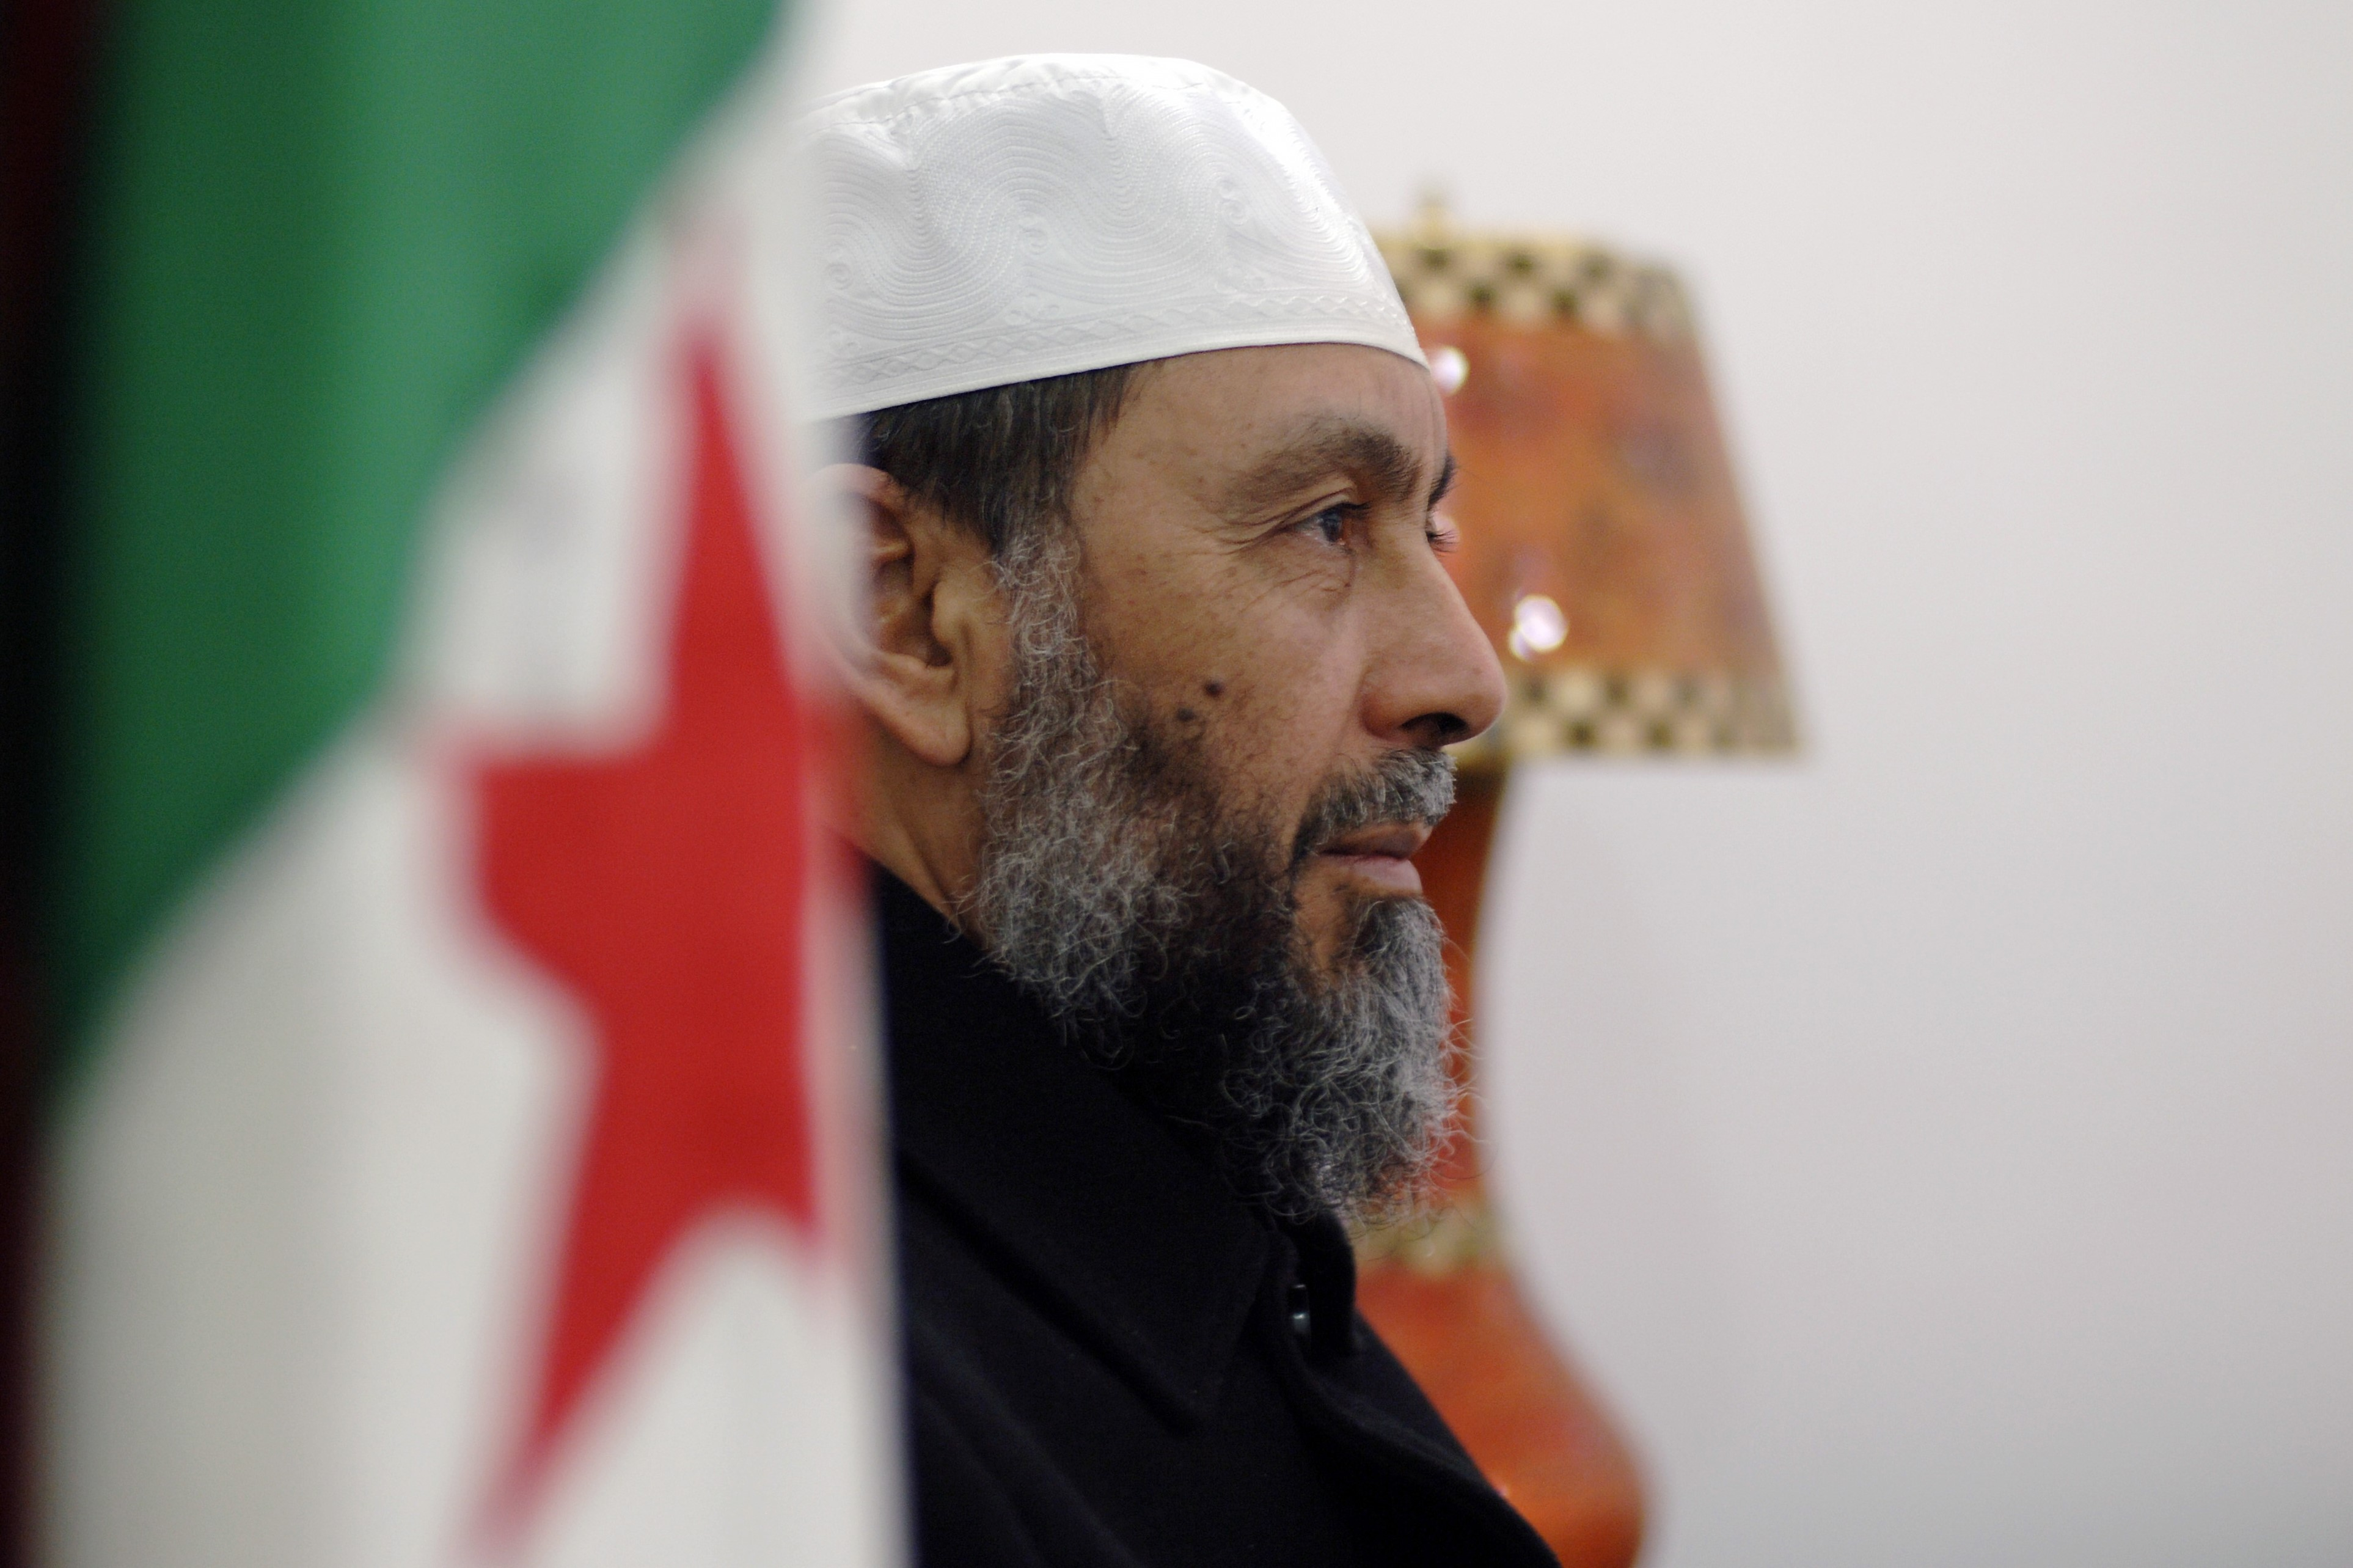 Abdellah Djaballah, the head of Algeria's Islamist Front for Justice and Development (FJD), poses at the party's headquarters in the capital Algiers on 15 January 2017 (AFP)